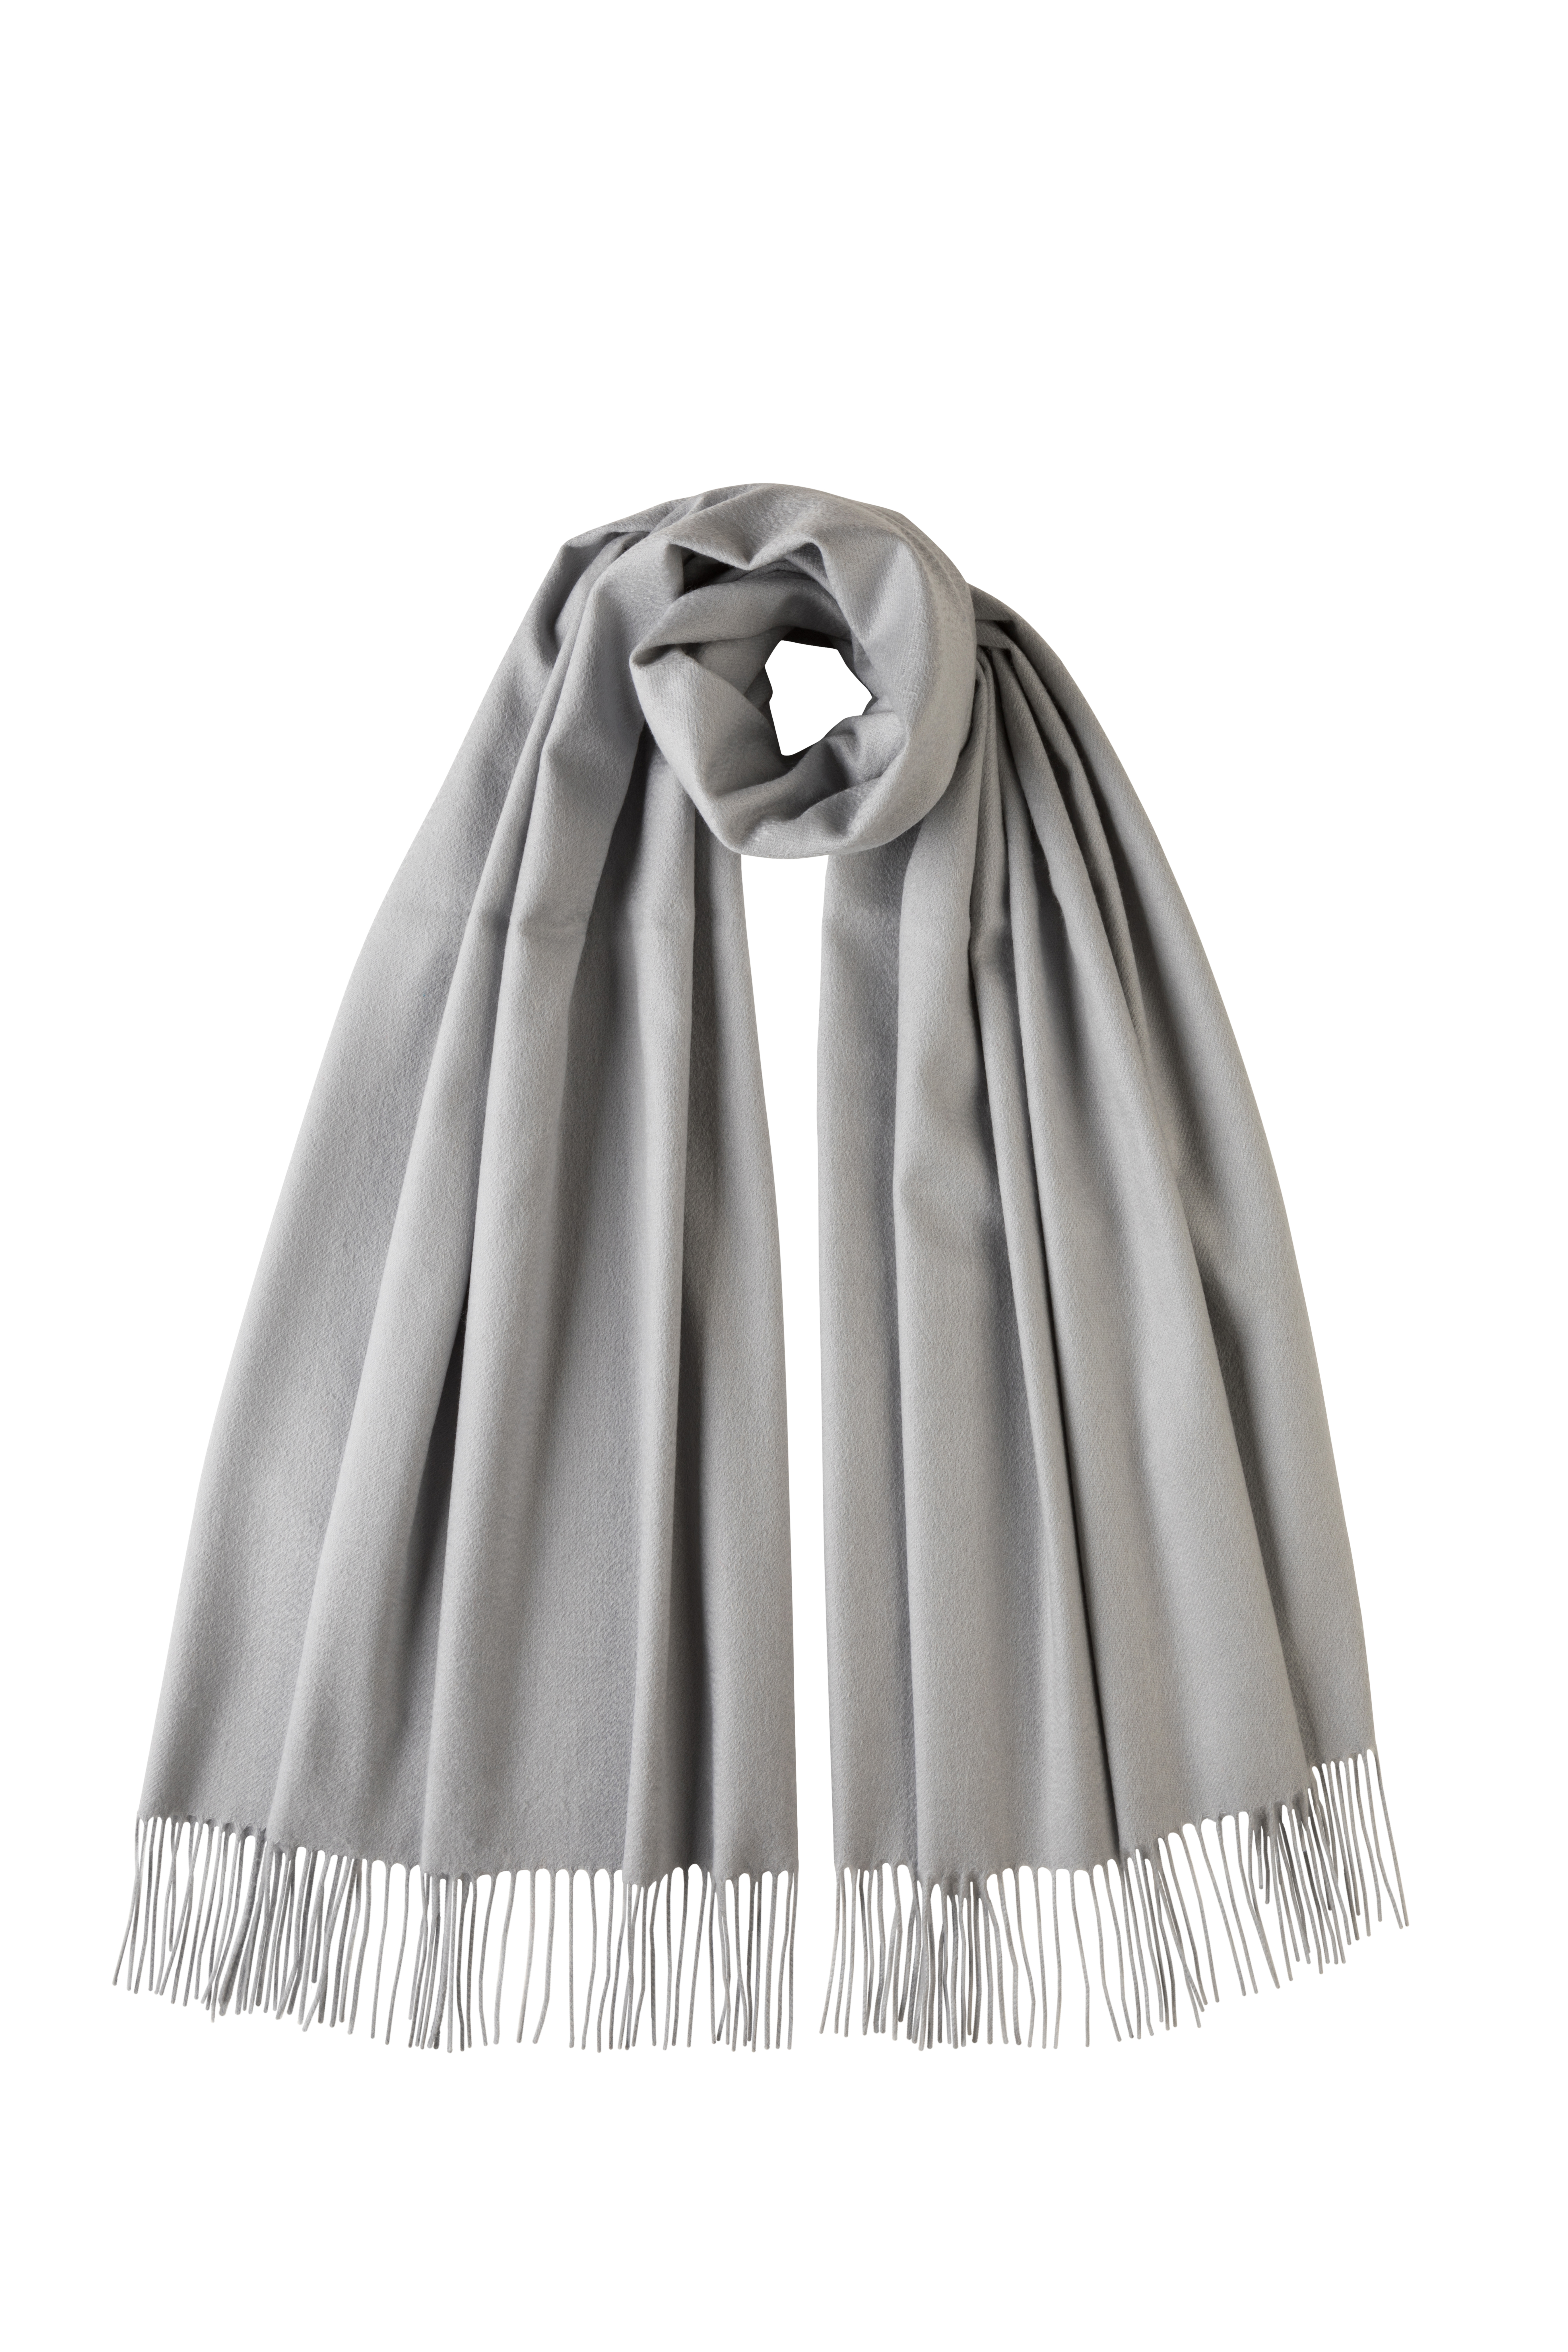 Colour: Light Flat Grey